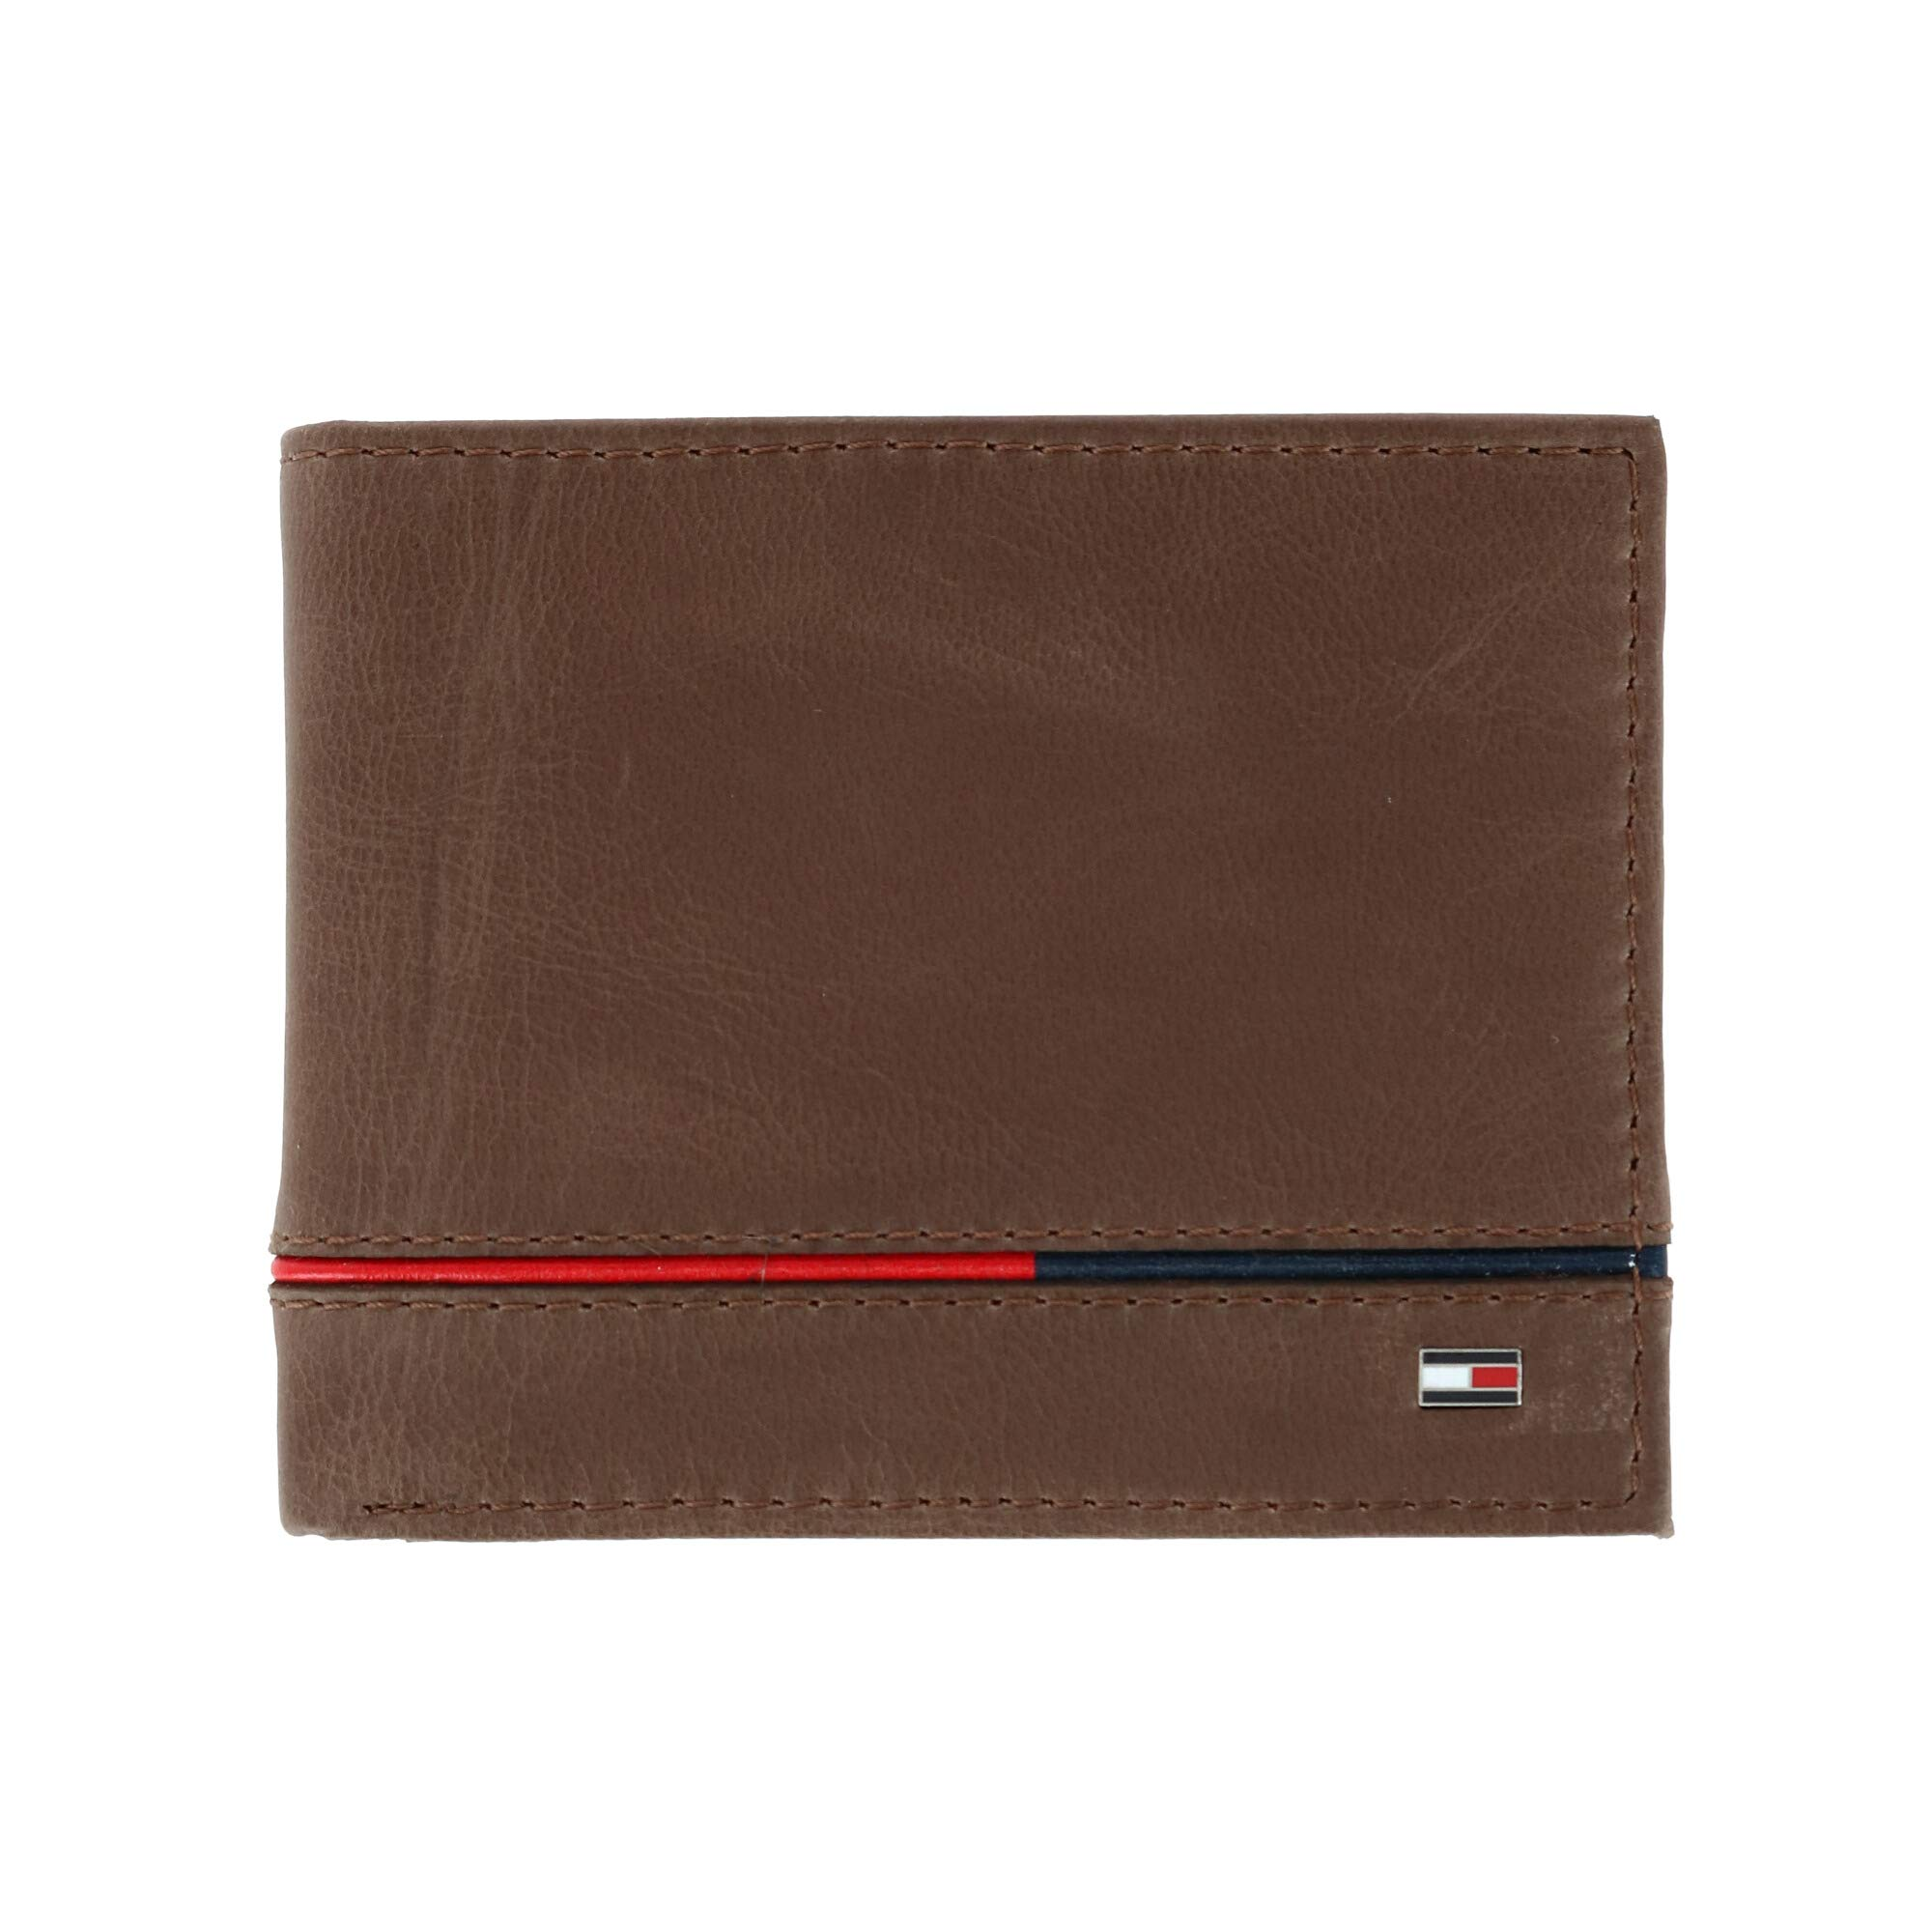 Men's Leather Leif RFID Bifold Wallet with Flip ID, Brown